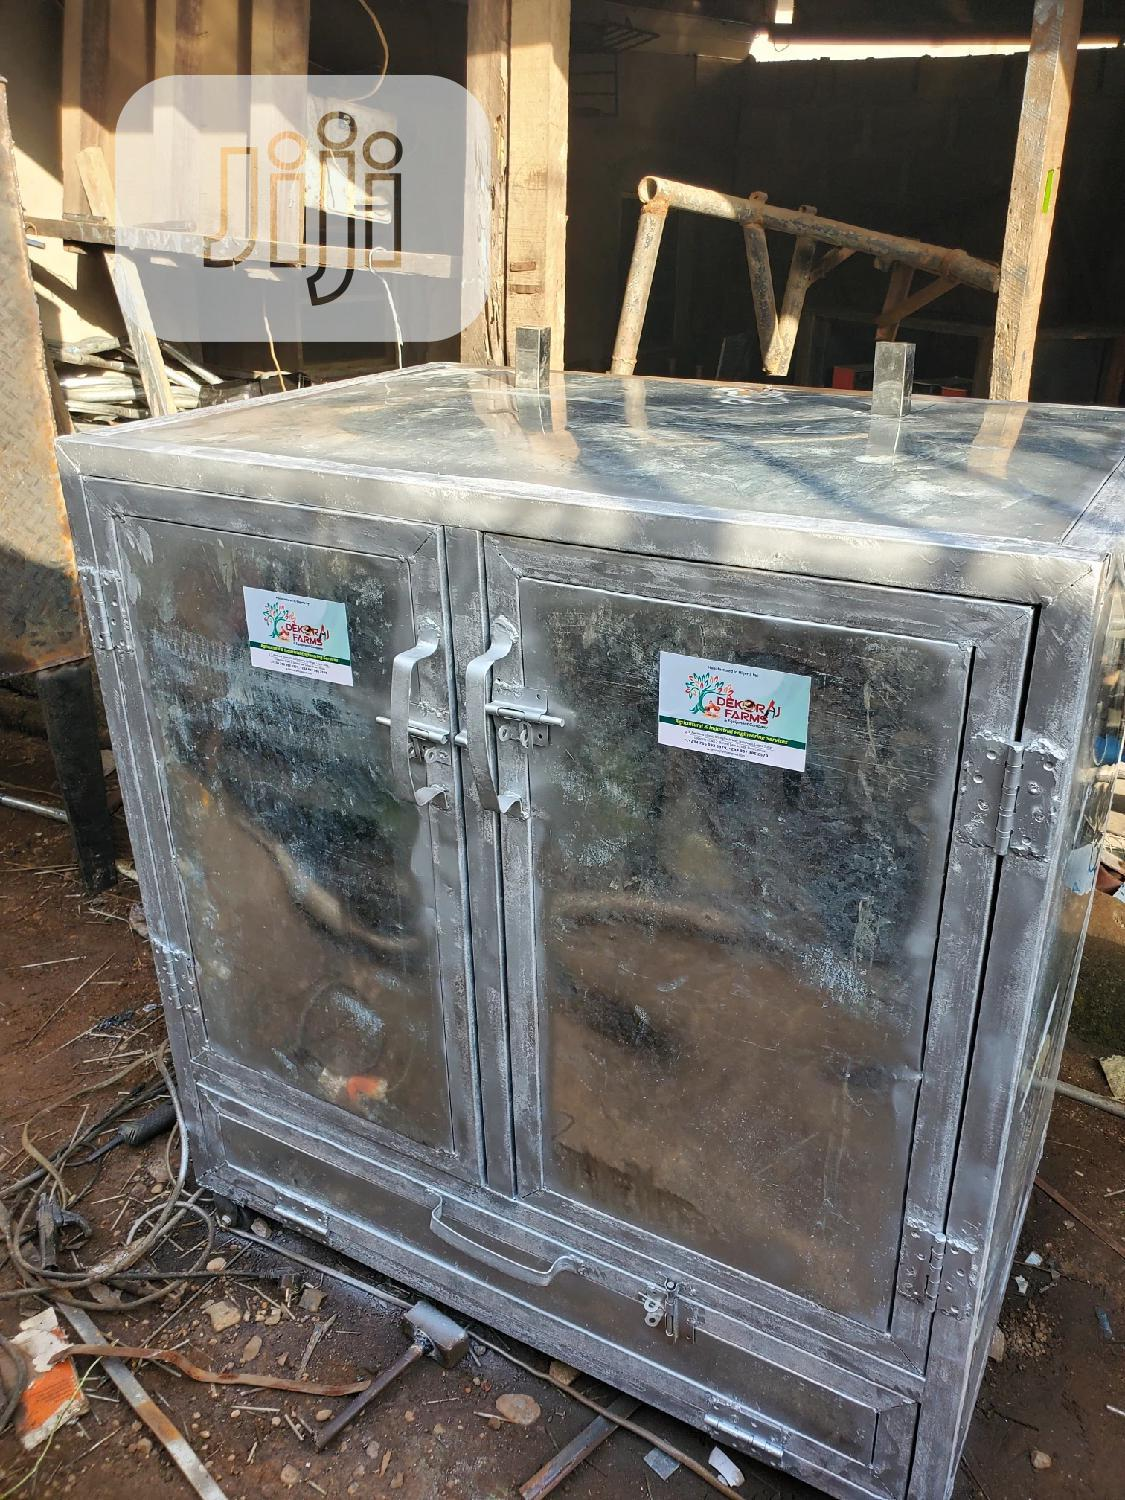 200 × 1 Kg Fish Oven For Fish Farmers